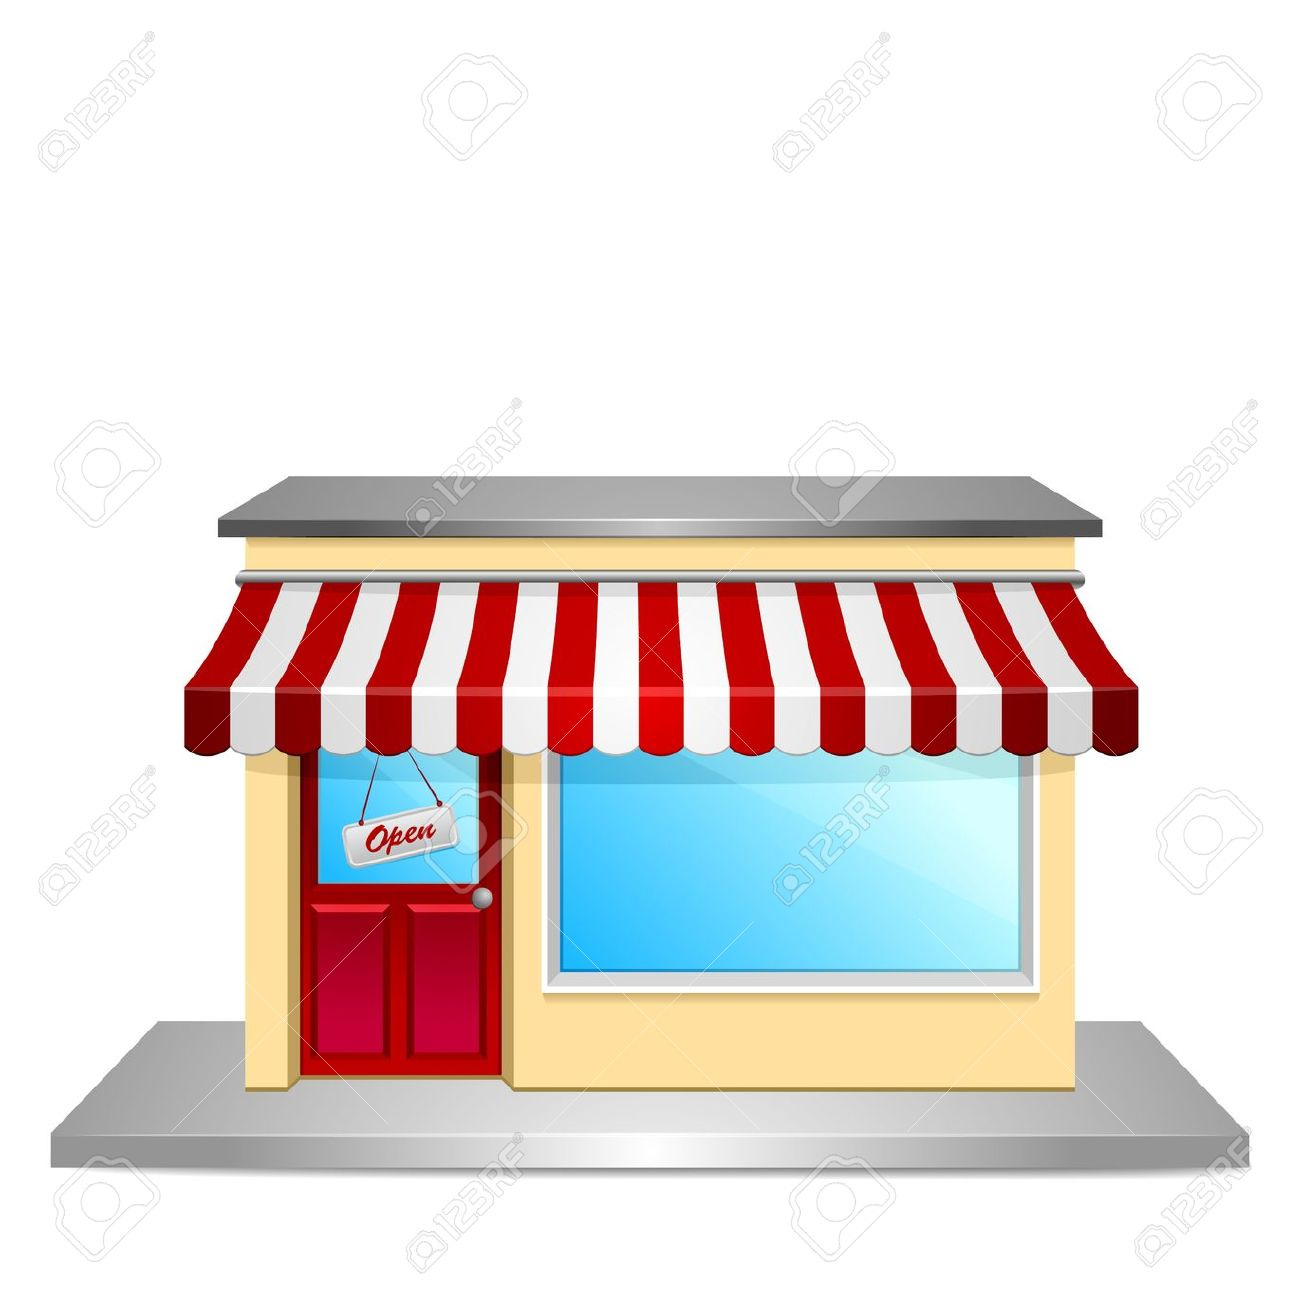 shop front clipart 20 free Cliparts | Download images on ...